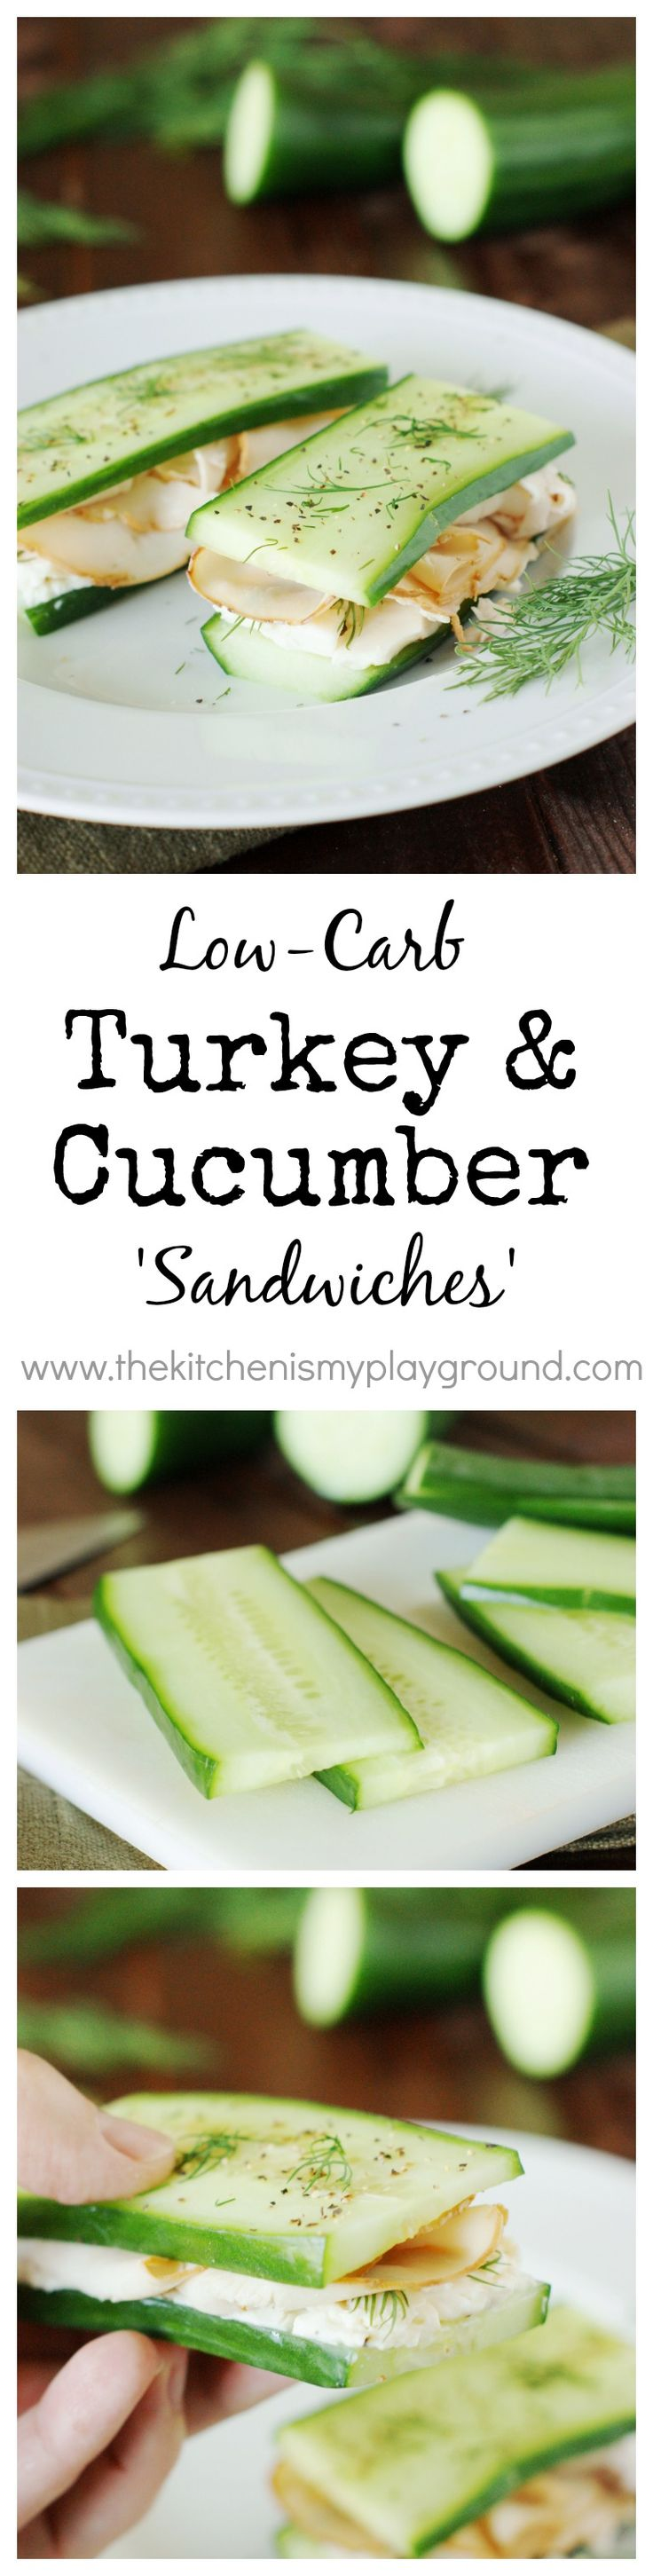 Low-Carb Smoked Turkey 'Sandwiches' ~ a GREAT low-carb lunch or snack option!    www.thekitchenismyplayground.com: